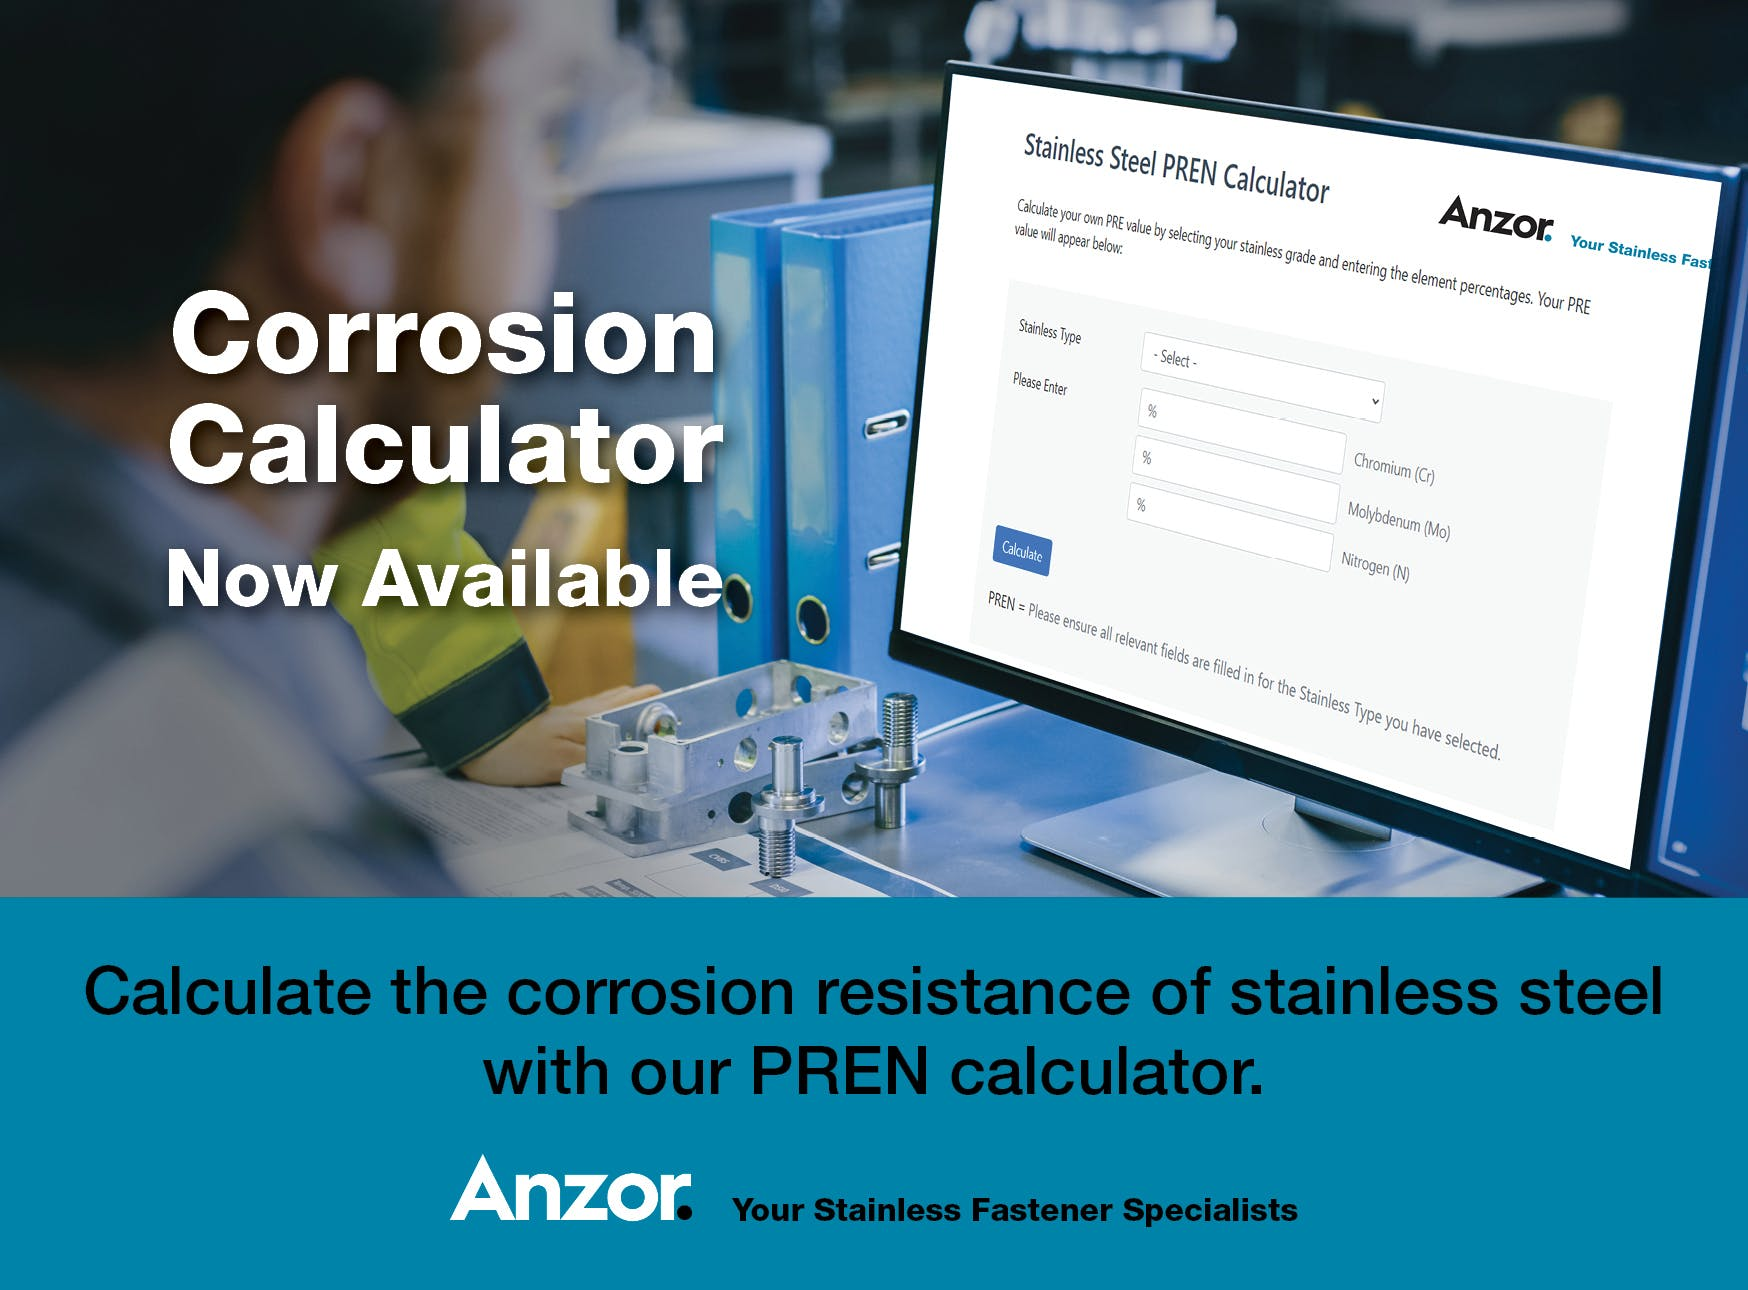 Calculate the corrosion resistance of your stainless steel with our PREN calculator